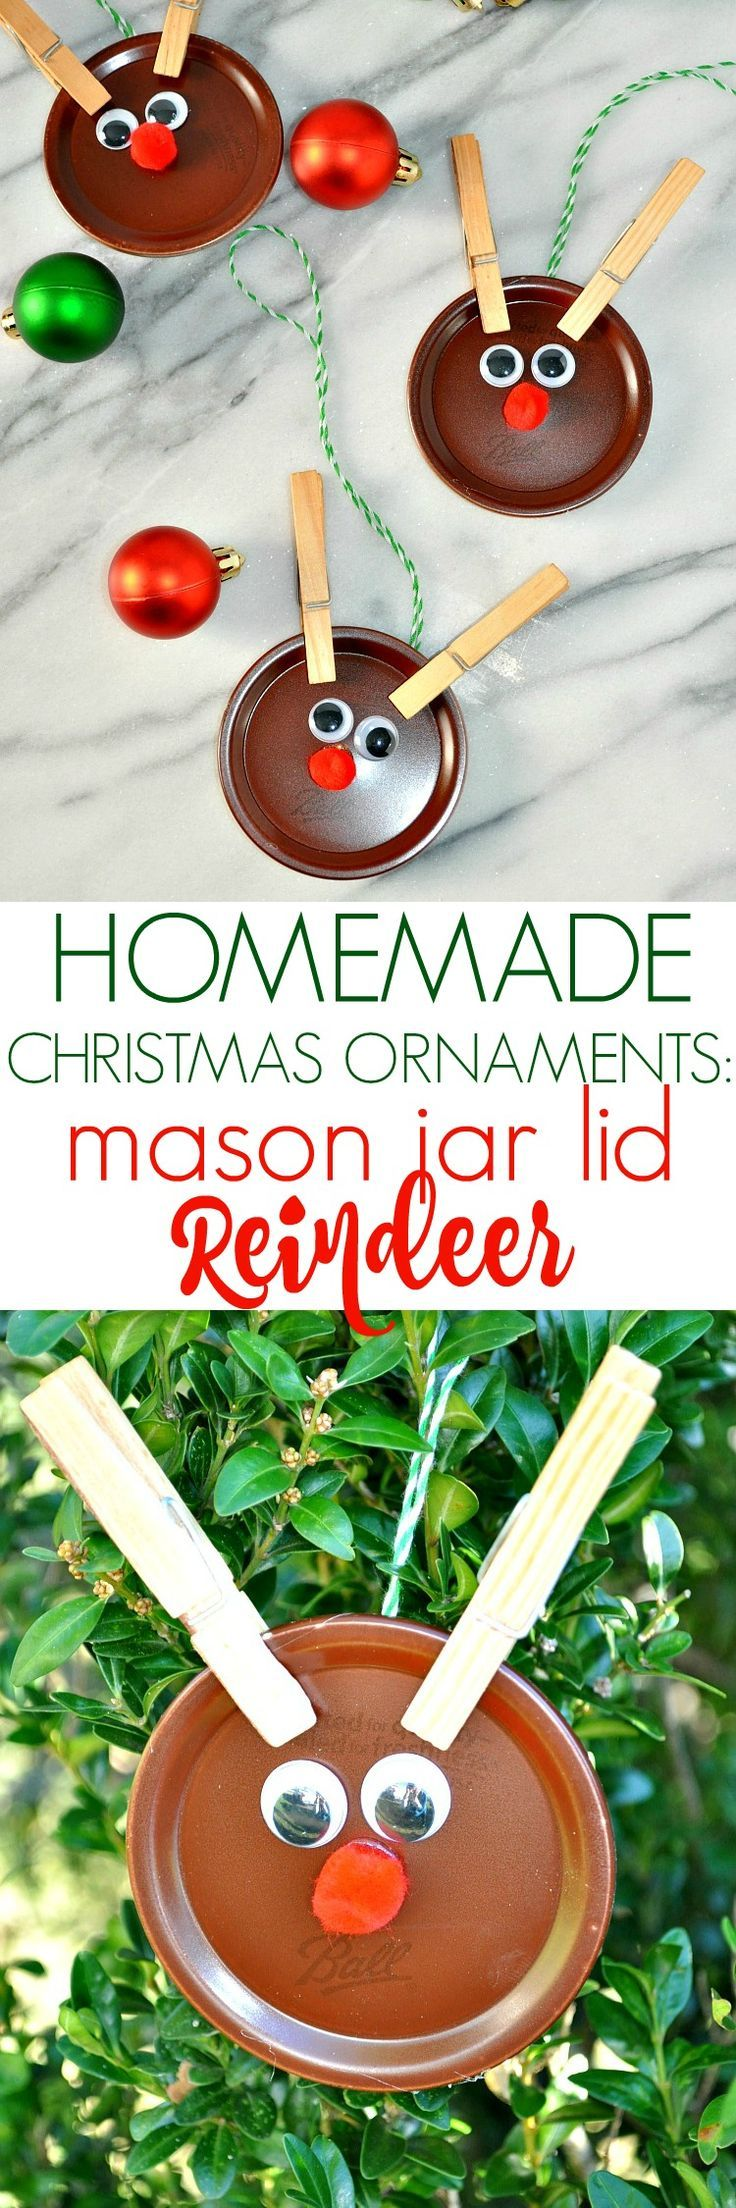 easy christmas crafts ideas ornaments jar lid reindeer 4336